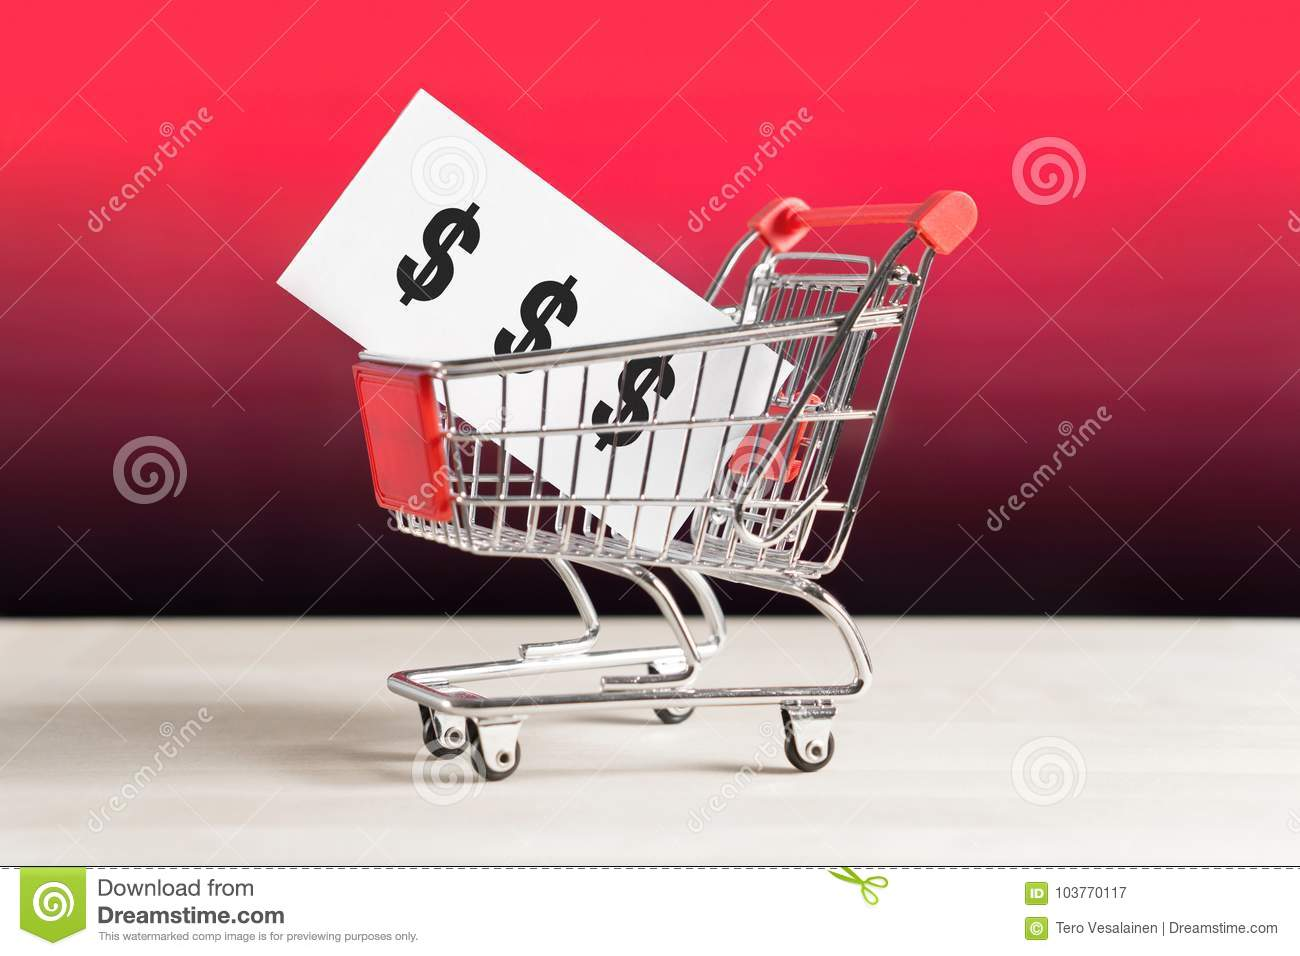 Grocery store chain, hypermarket and supermarket food prices.